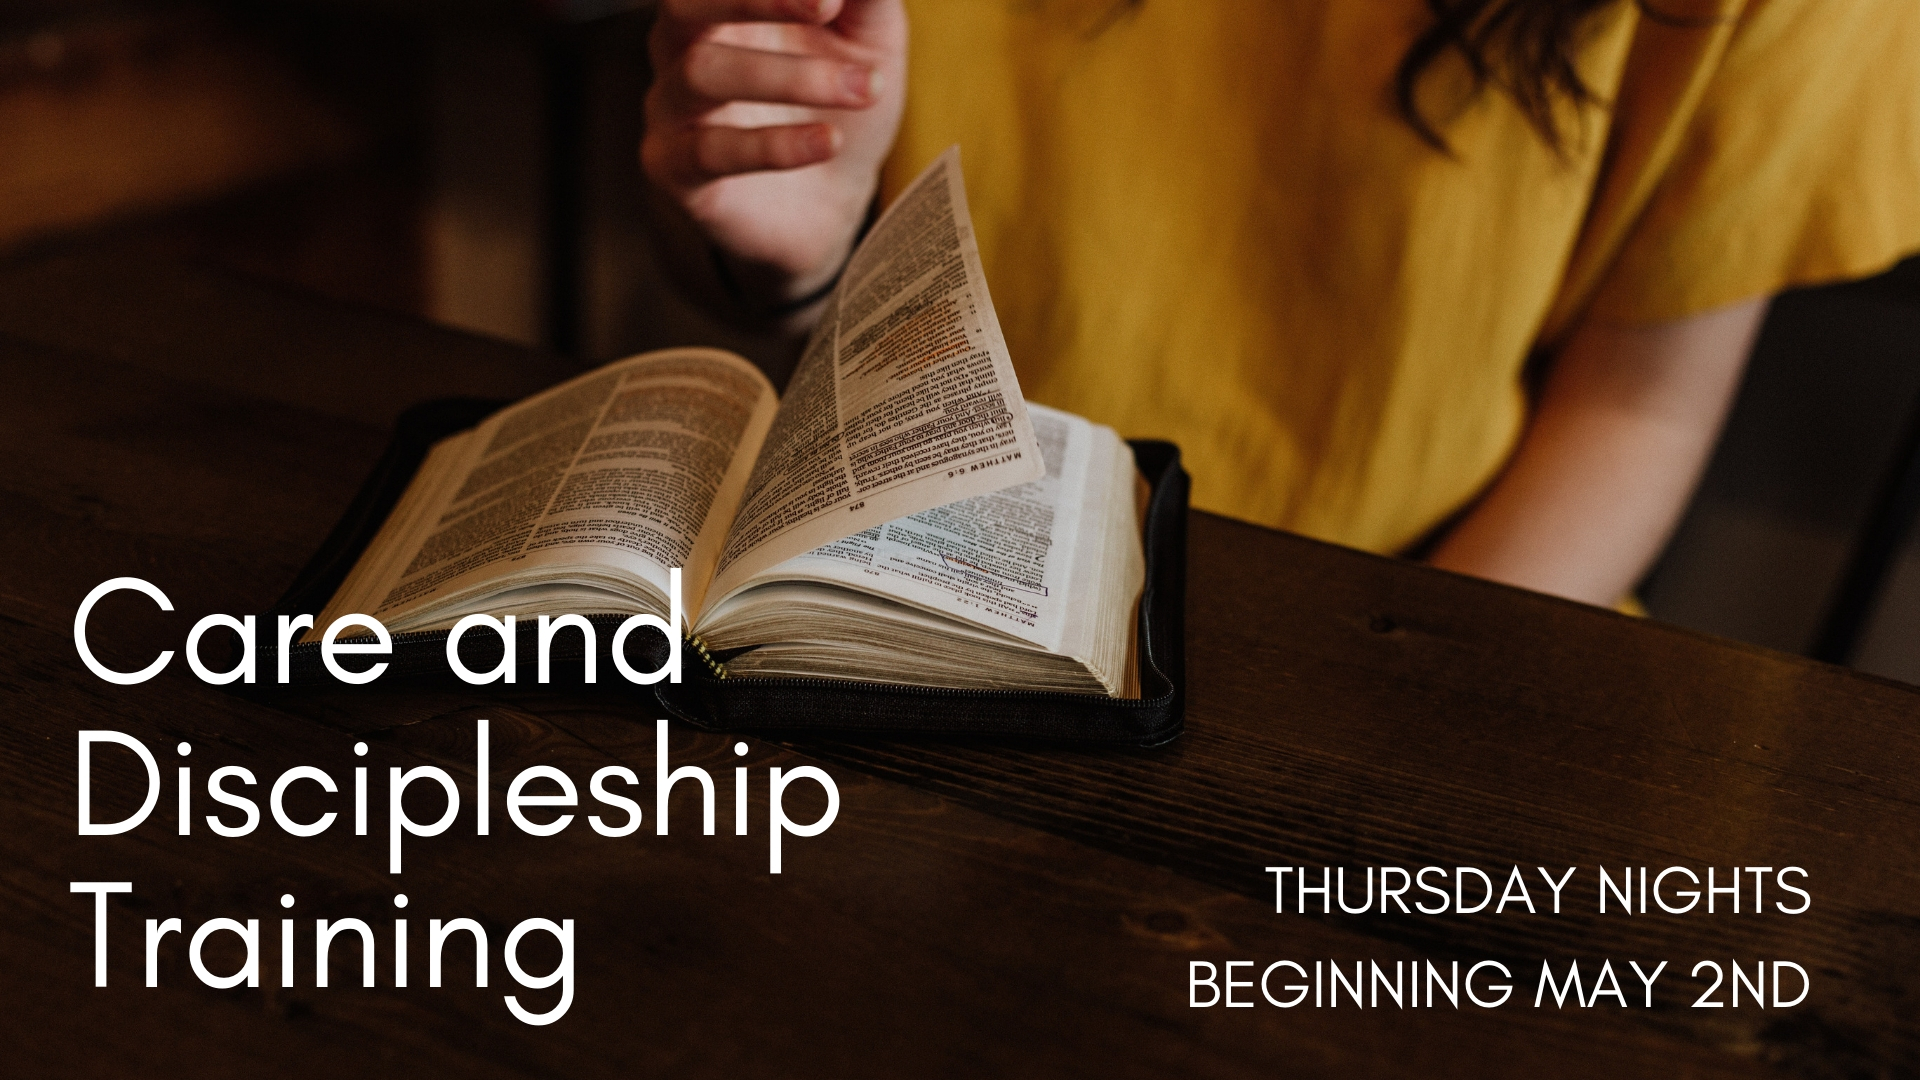 Copy of Care and Discipleship Training